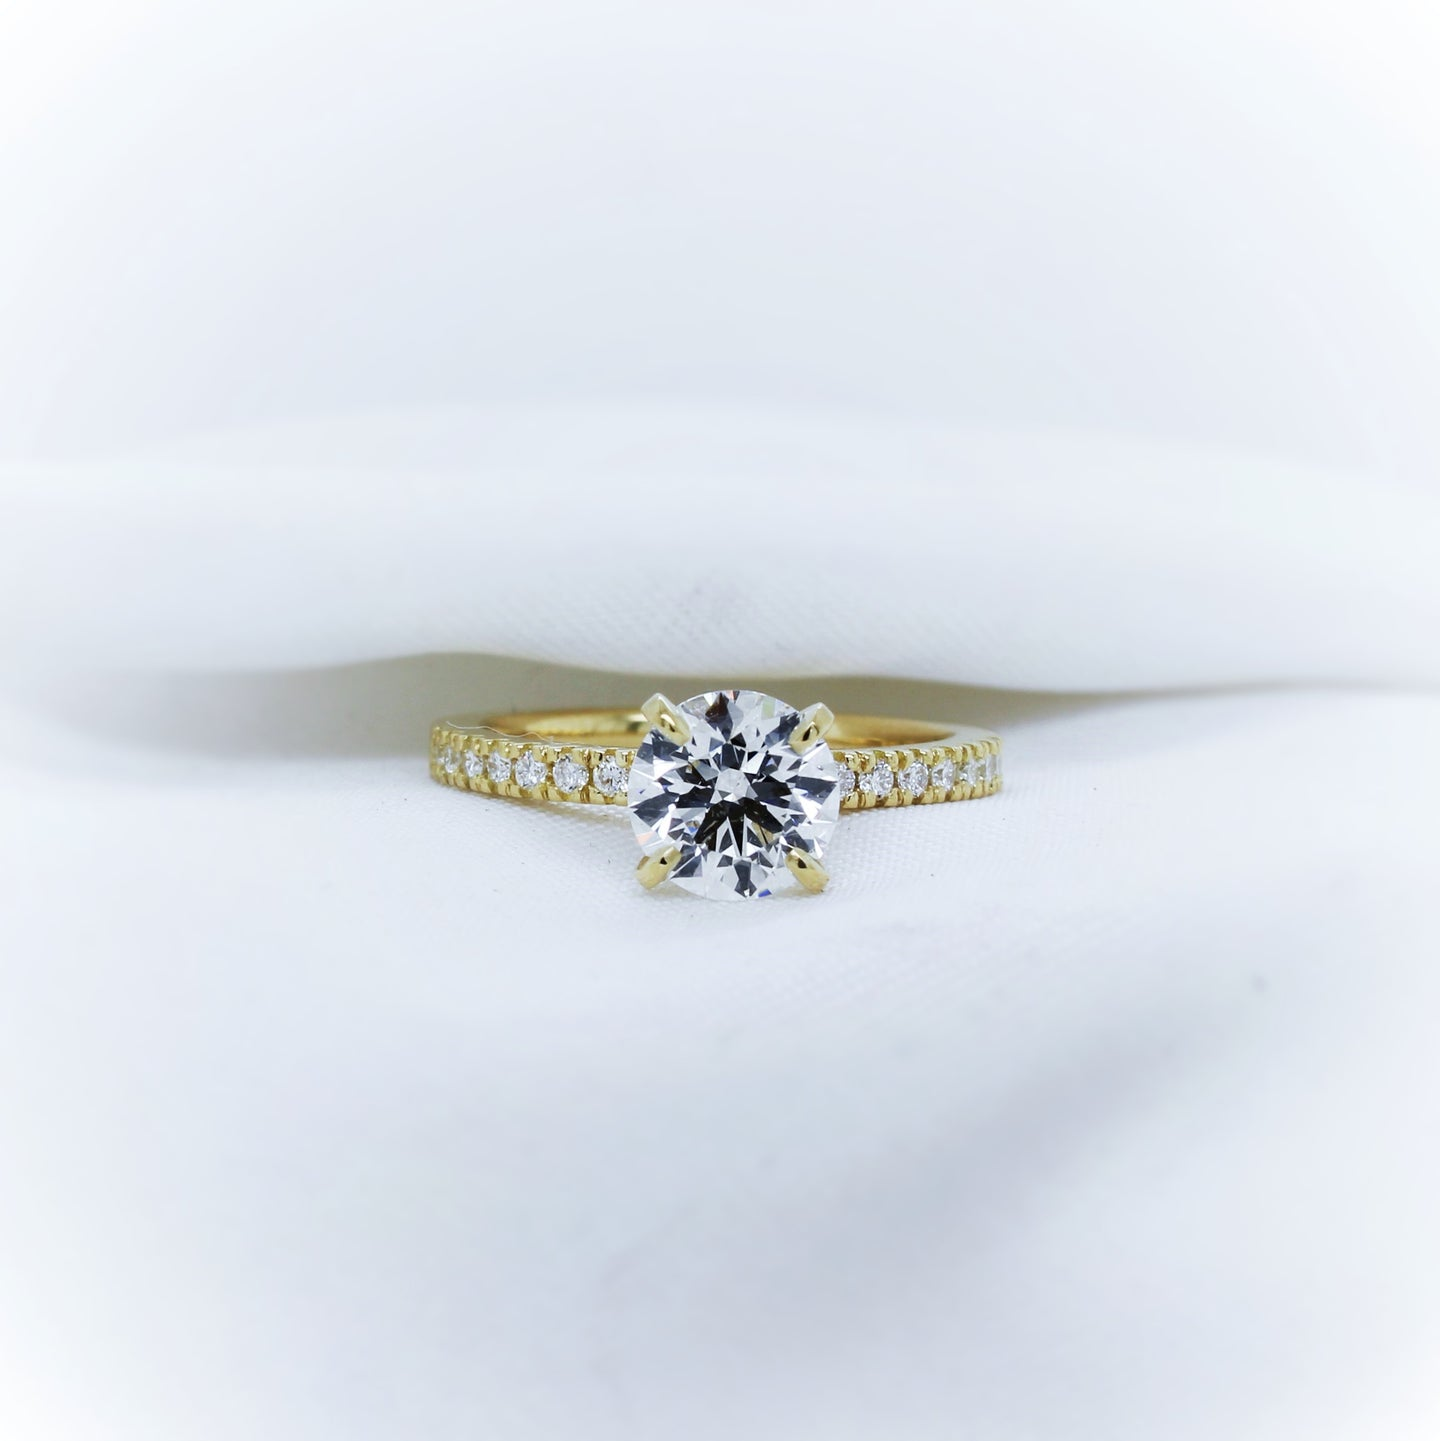 Shop Brisbane Engagement Rings Online Or Custom Design Your Engagement Ring At The French Door